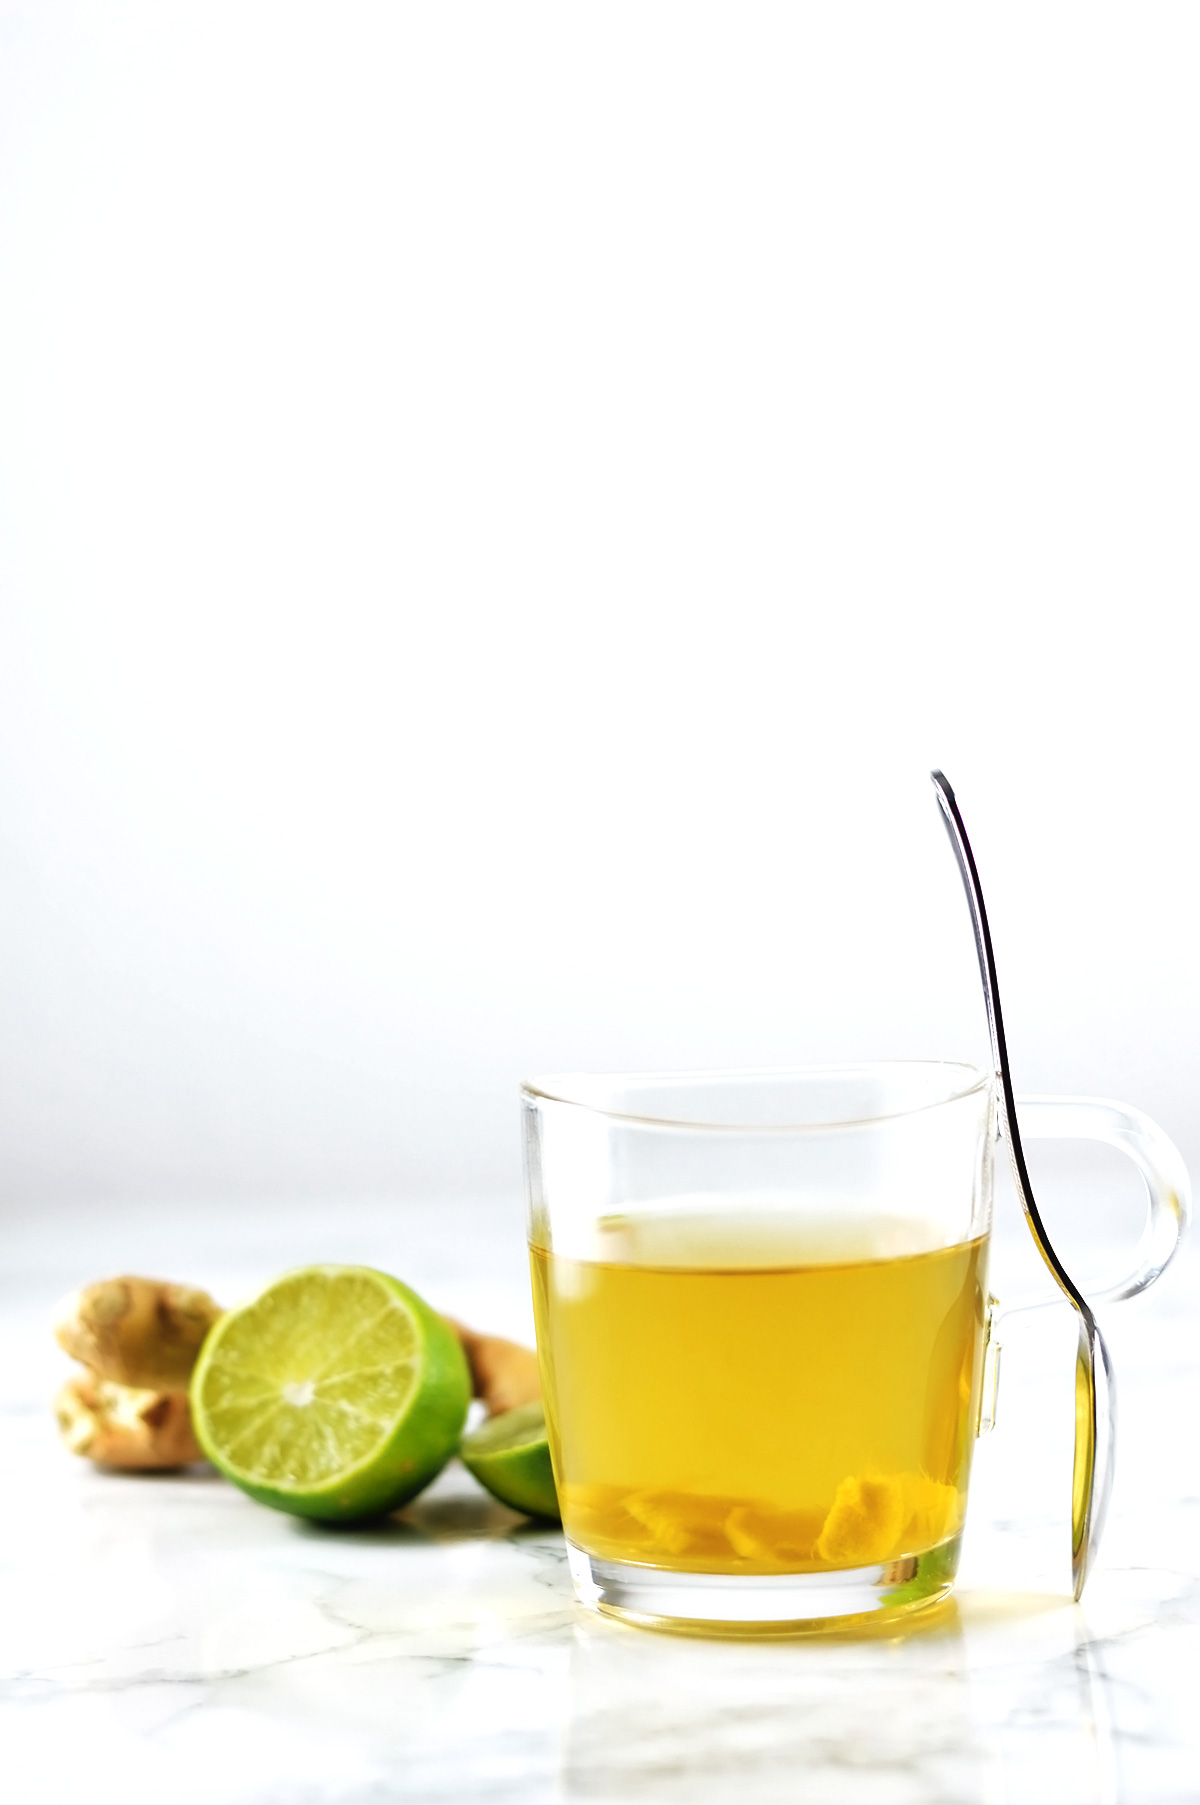 anti-inflammatory ginger tea